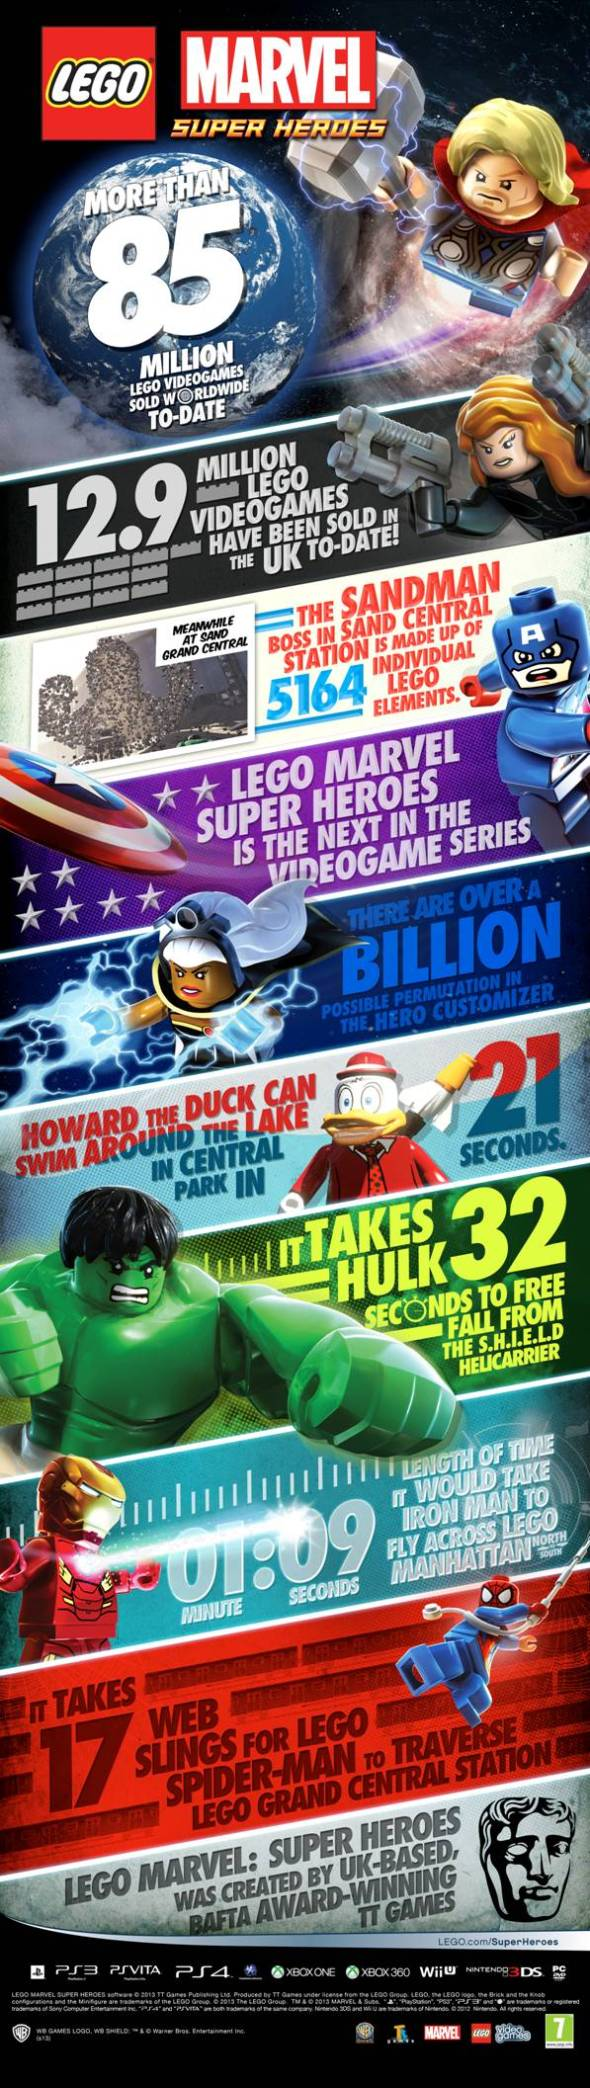 MArvel lego superheroes facts